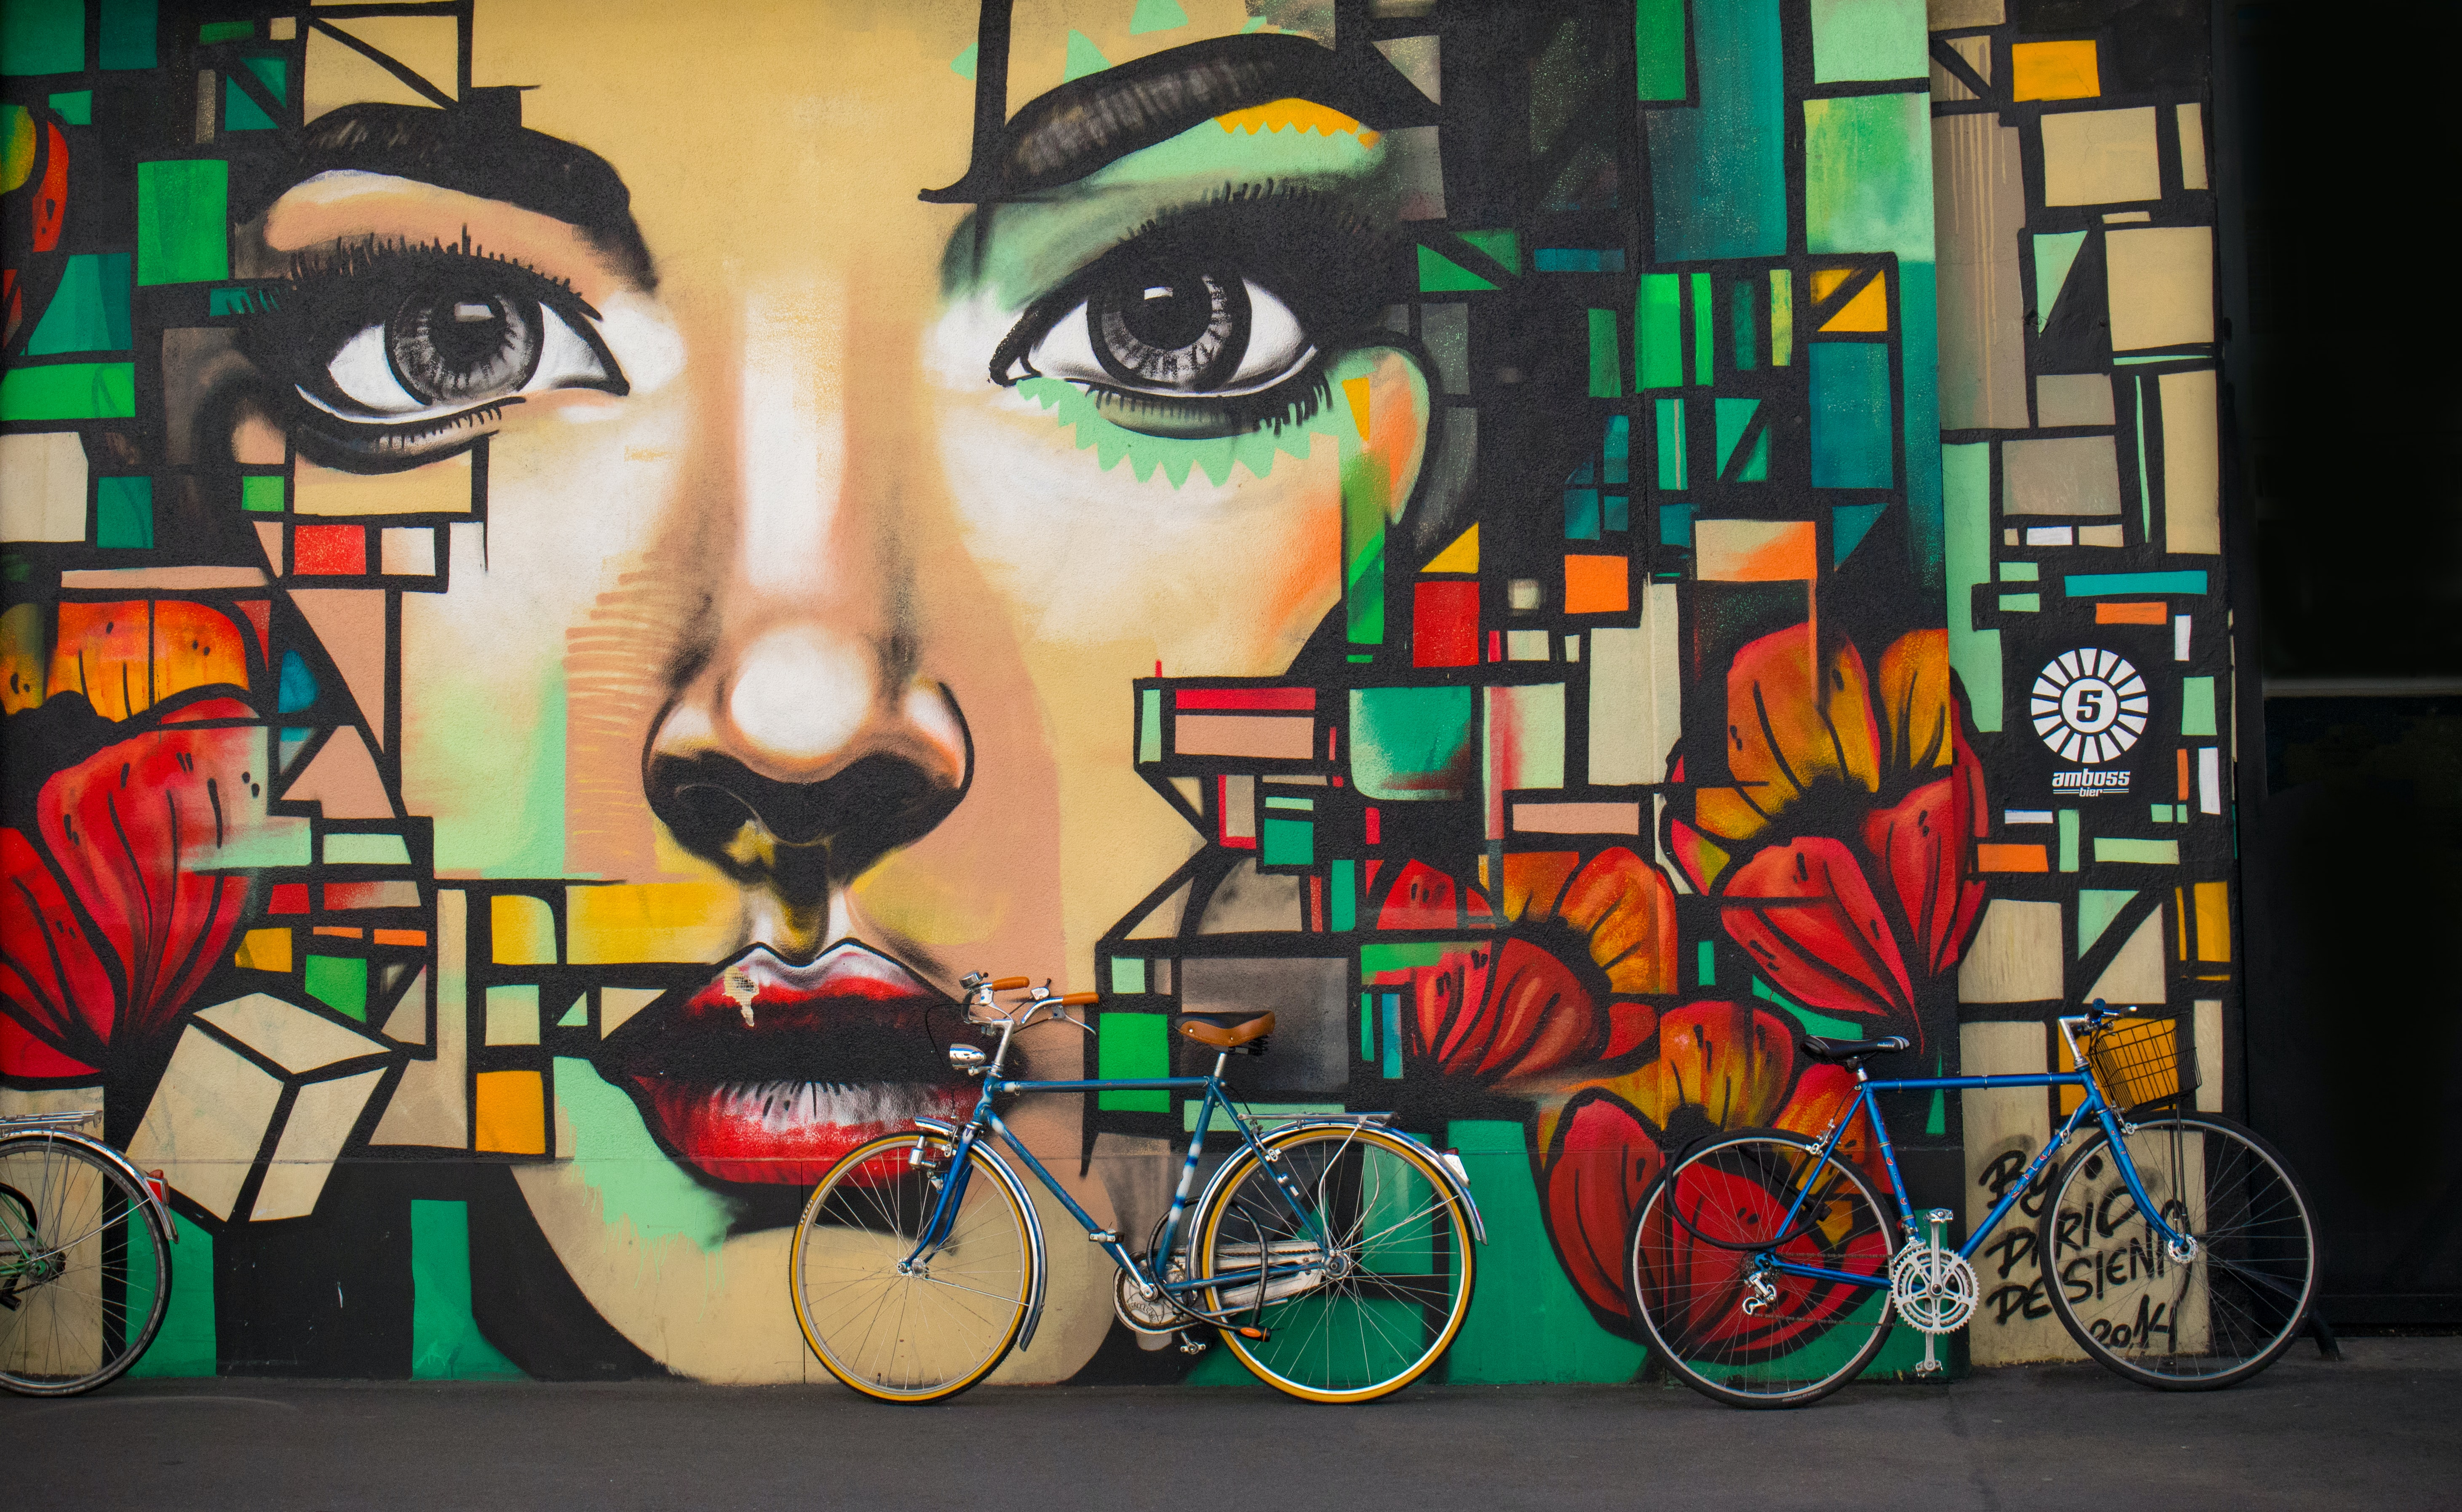 two blue cruiser bicycles on graffiti wall